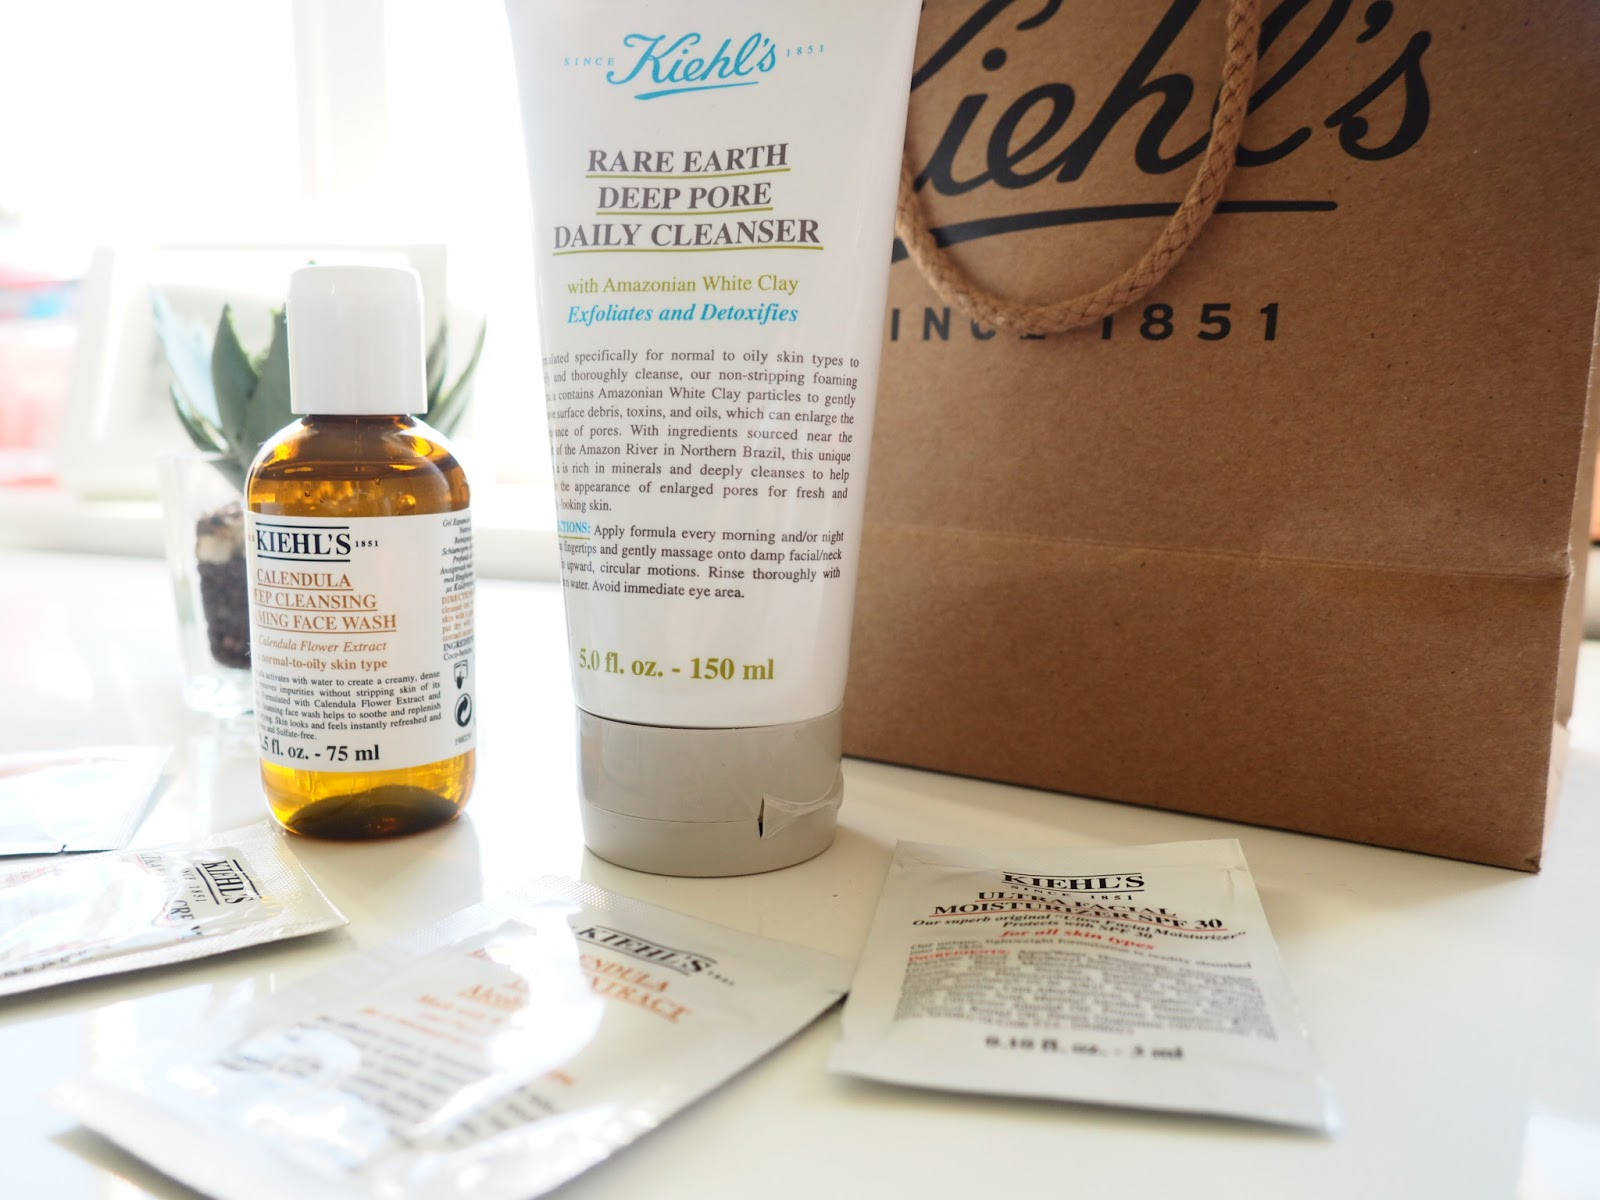 Kiehl's Calendula Deep Cleansing Face Wash and Rare Earth Deep Pore Daily Cleanser Review